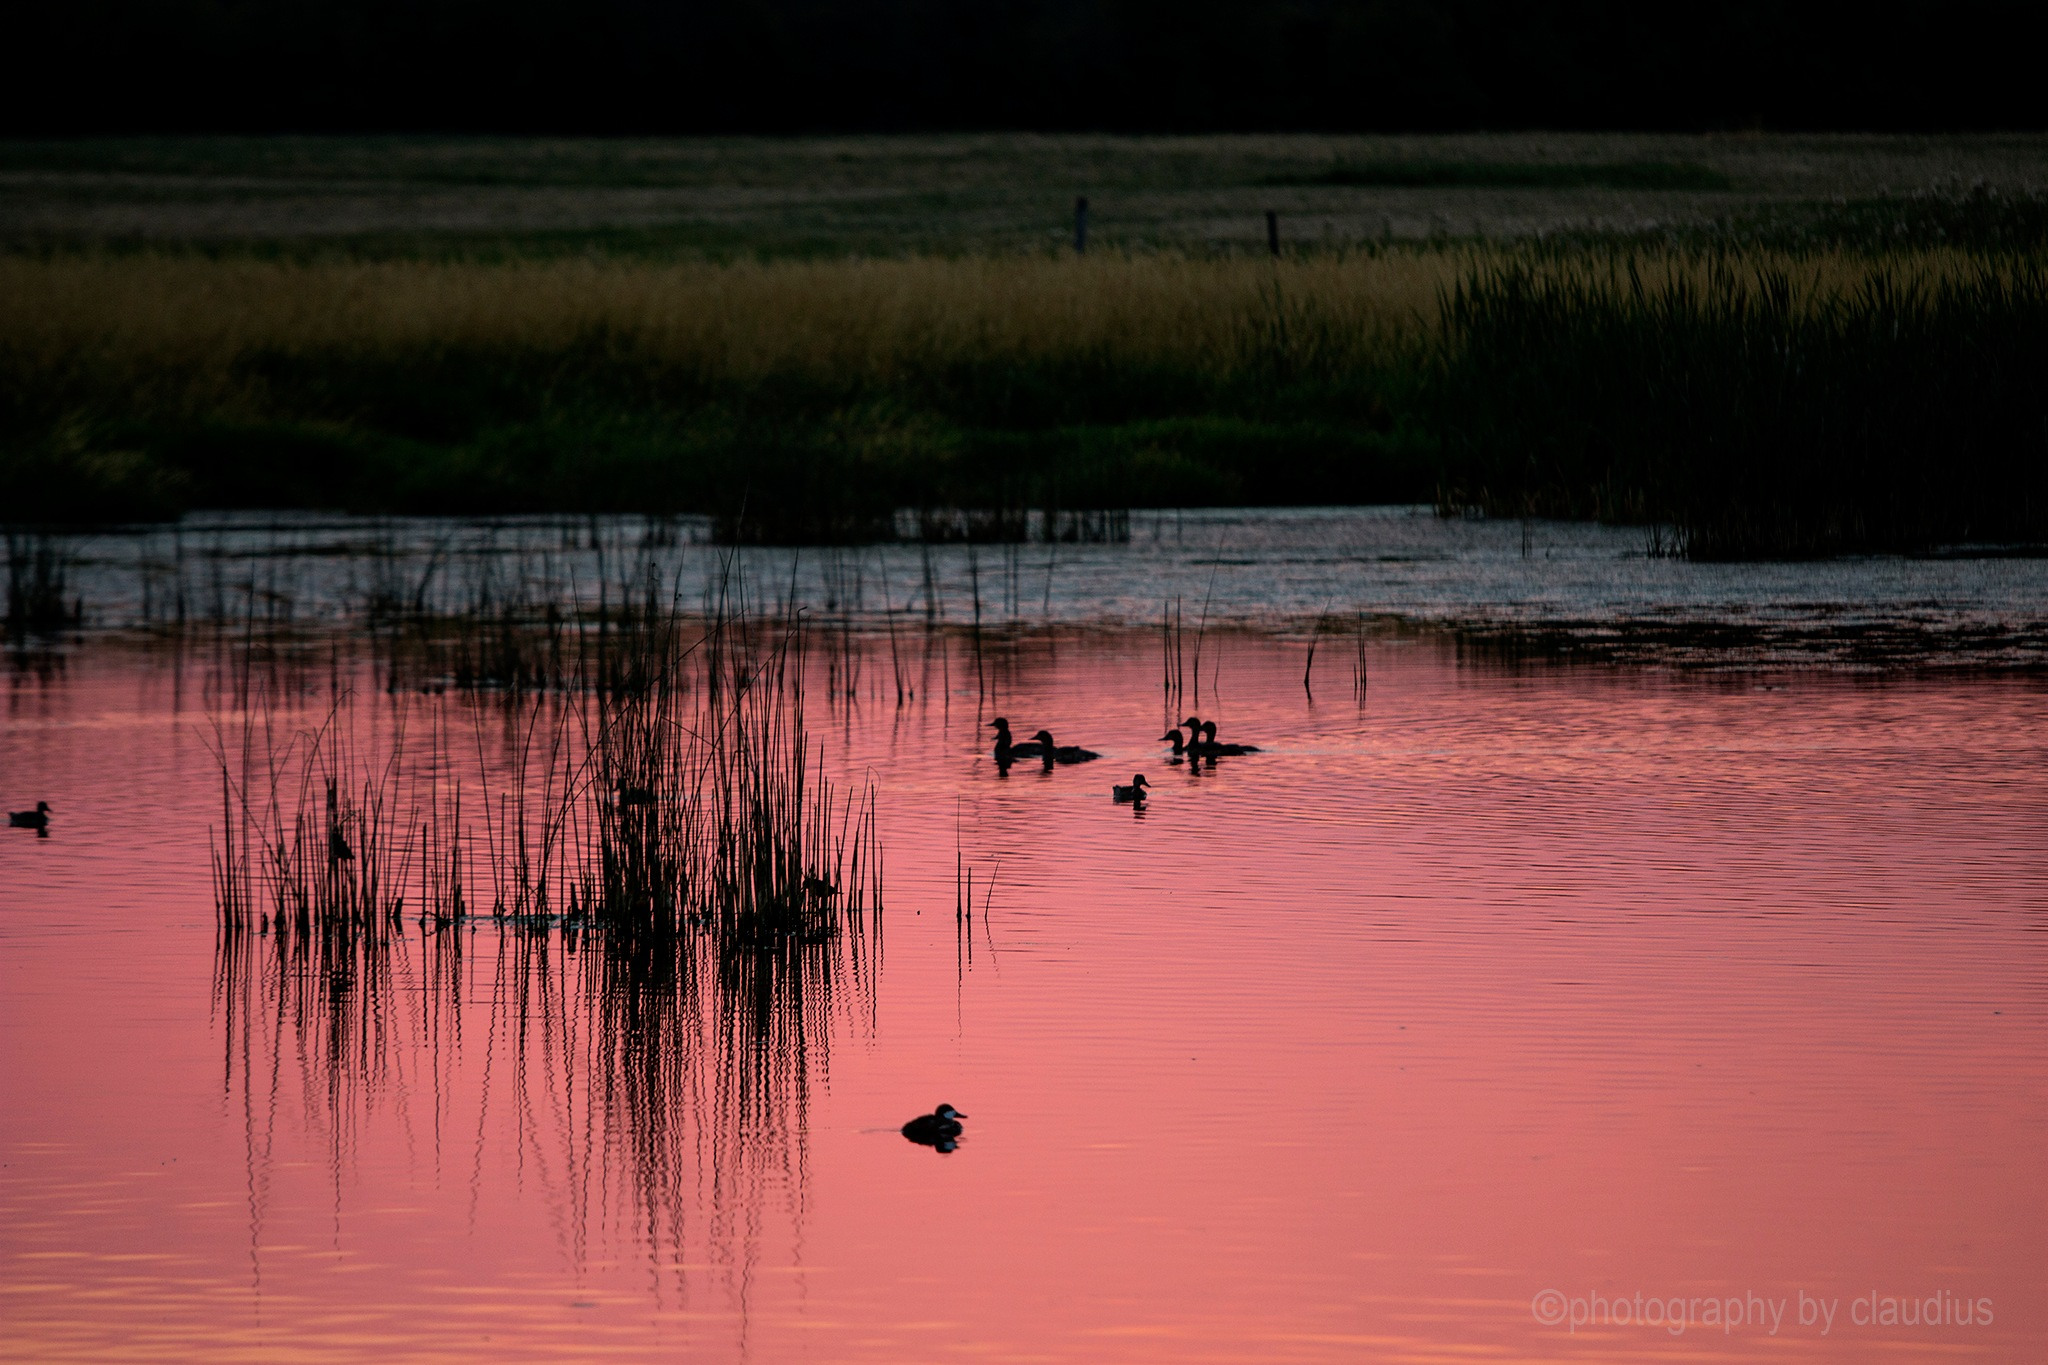 Calm evening by the pond... by Claudius Cazan